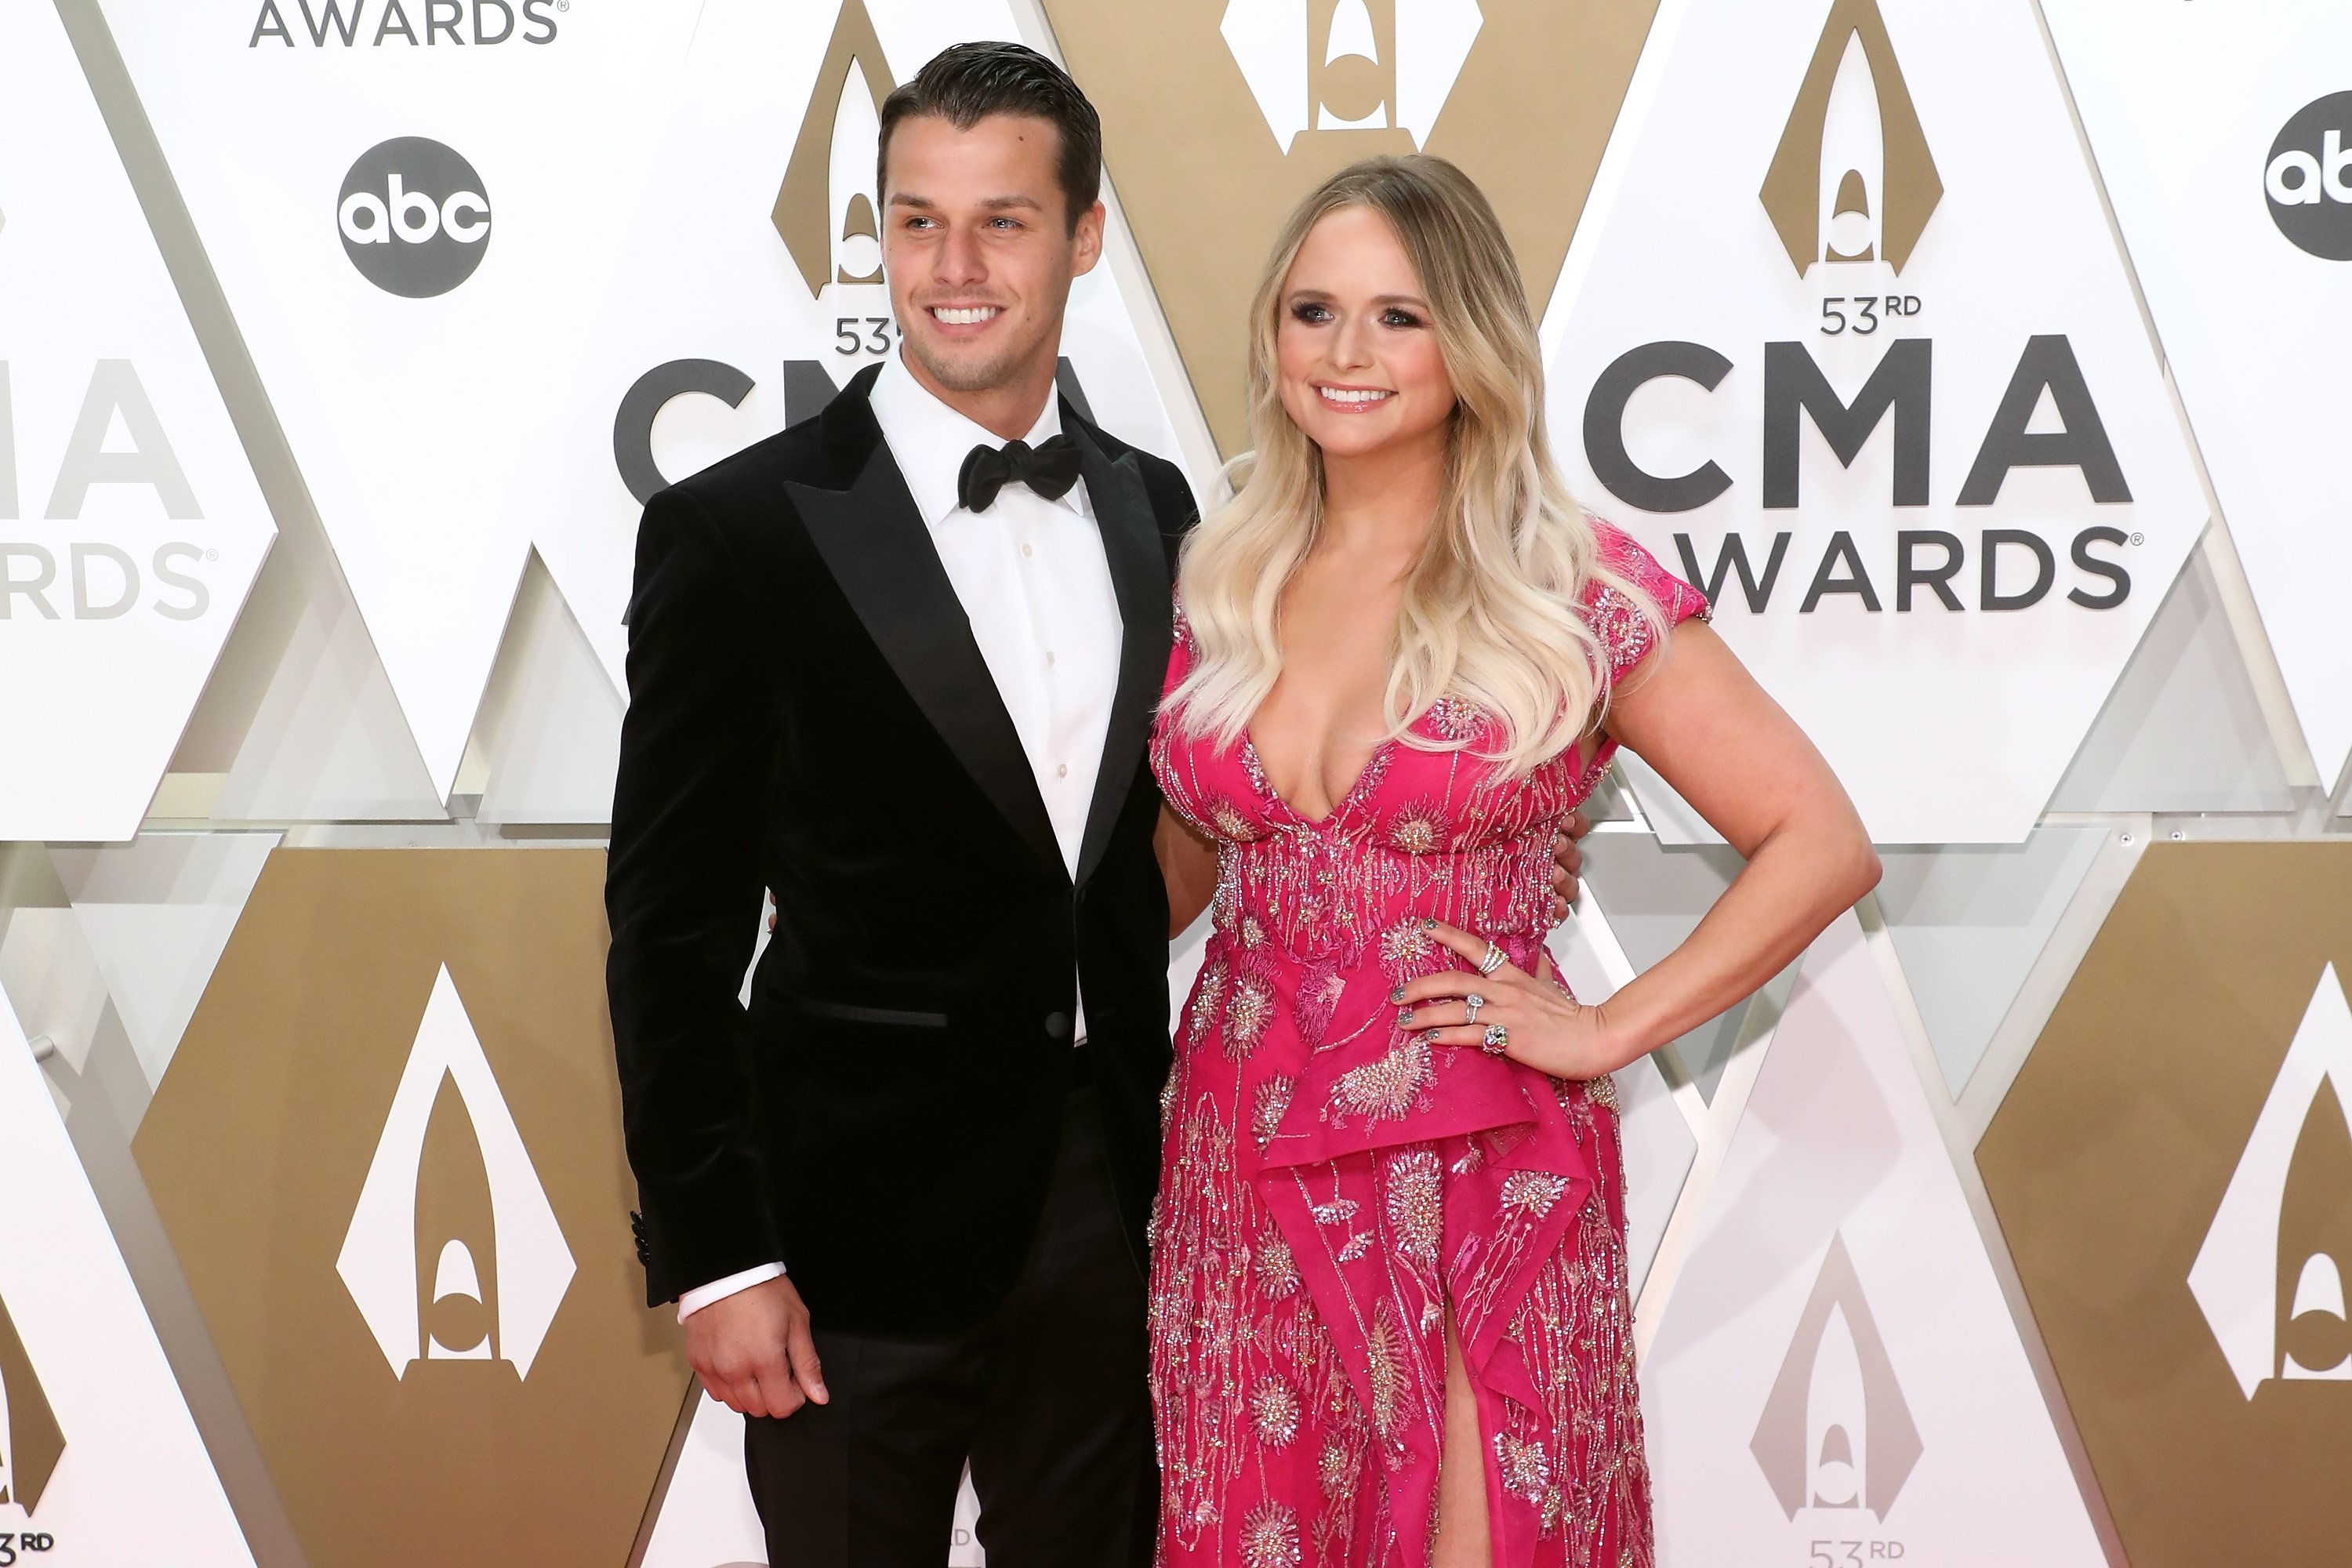 Brendan McLoughlin and Miranda Lambert attend the CMA Awards in Nashville, Tennesee on November 13, 2019 | Photo: Getty Images